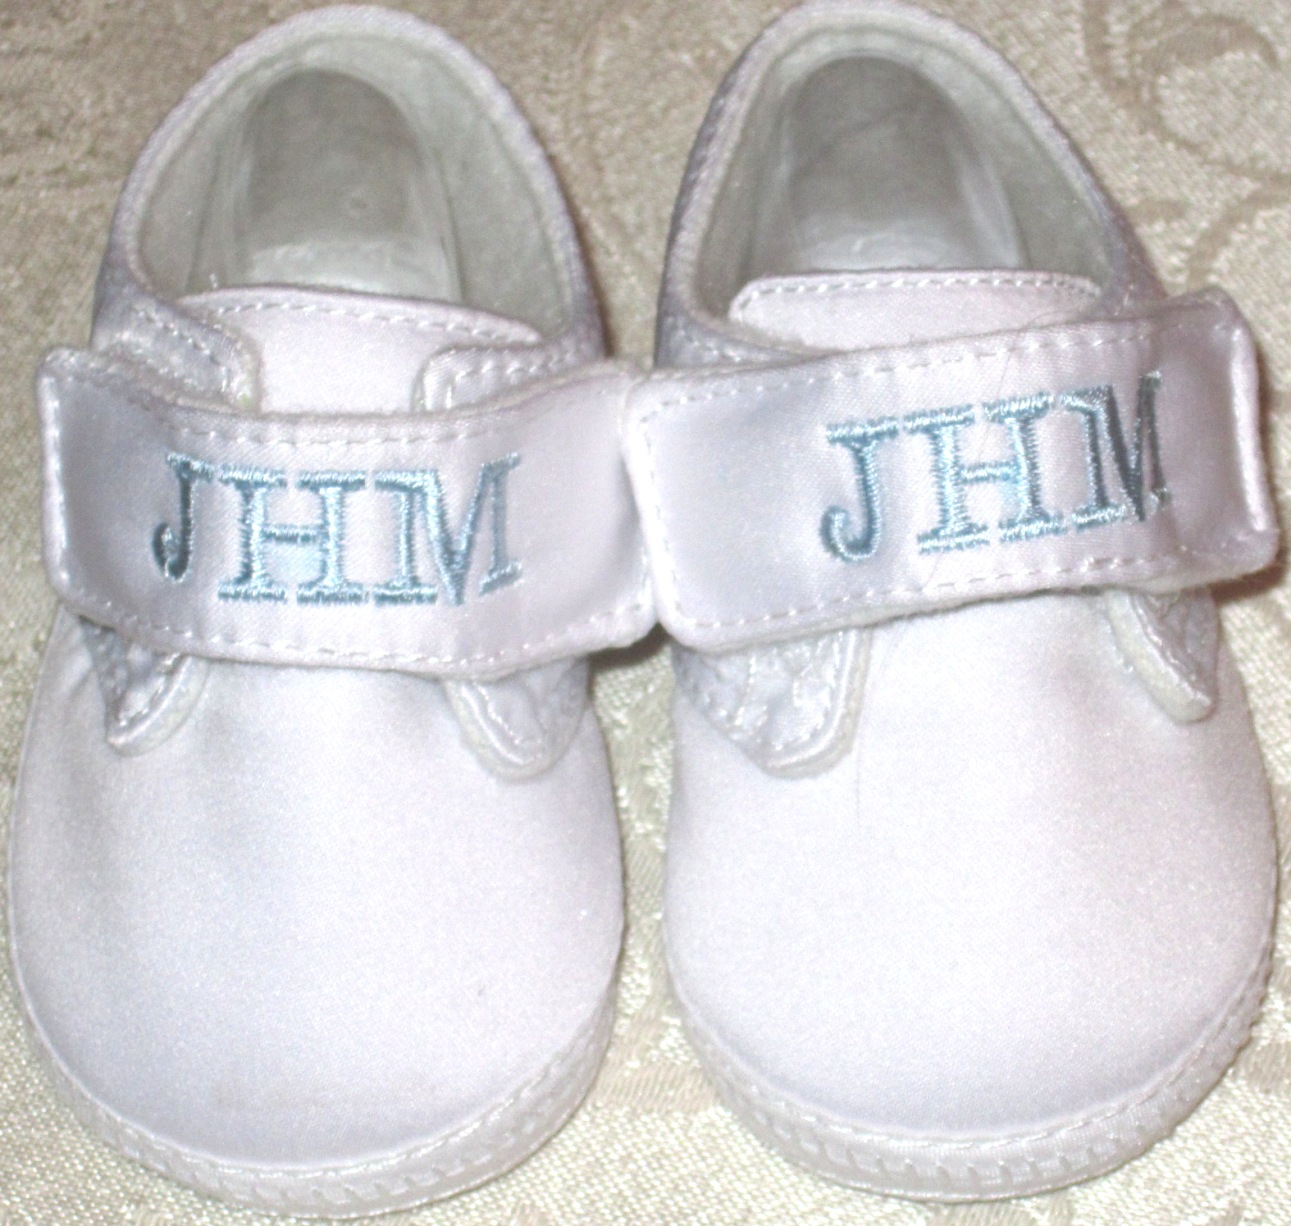 b029fbcf41bd Monogrammed Baby Shoes for Boys by Baby Deer